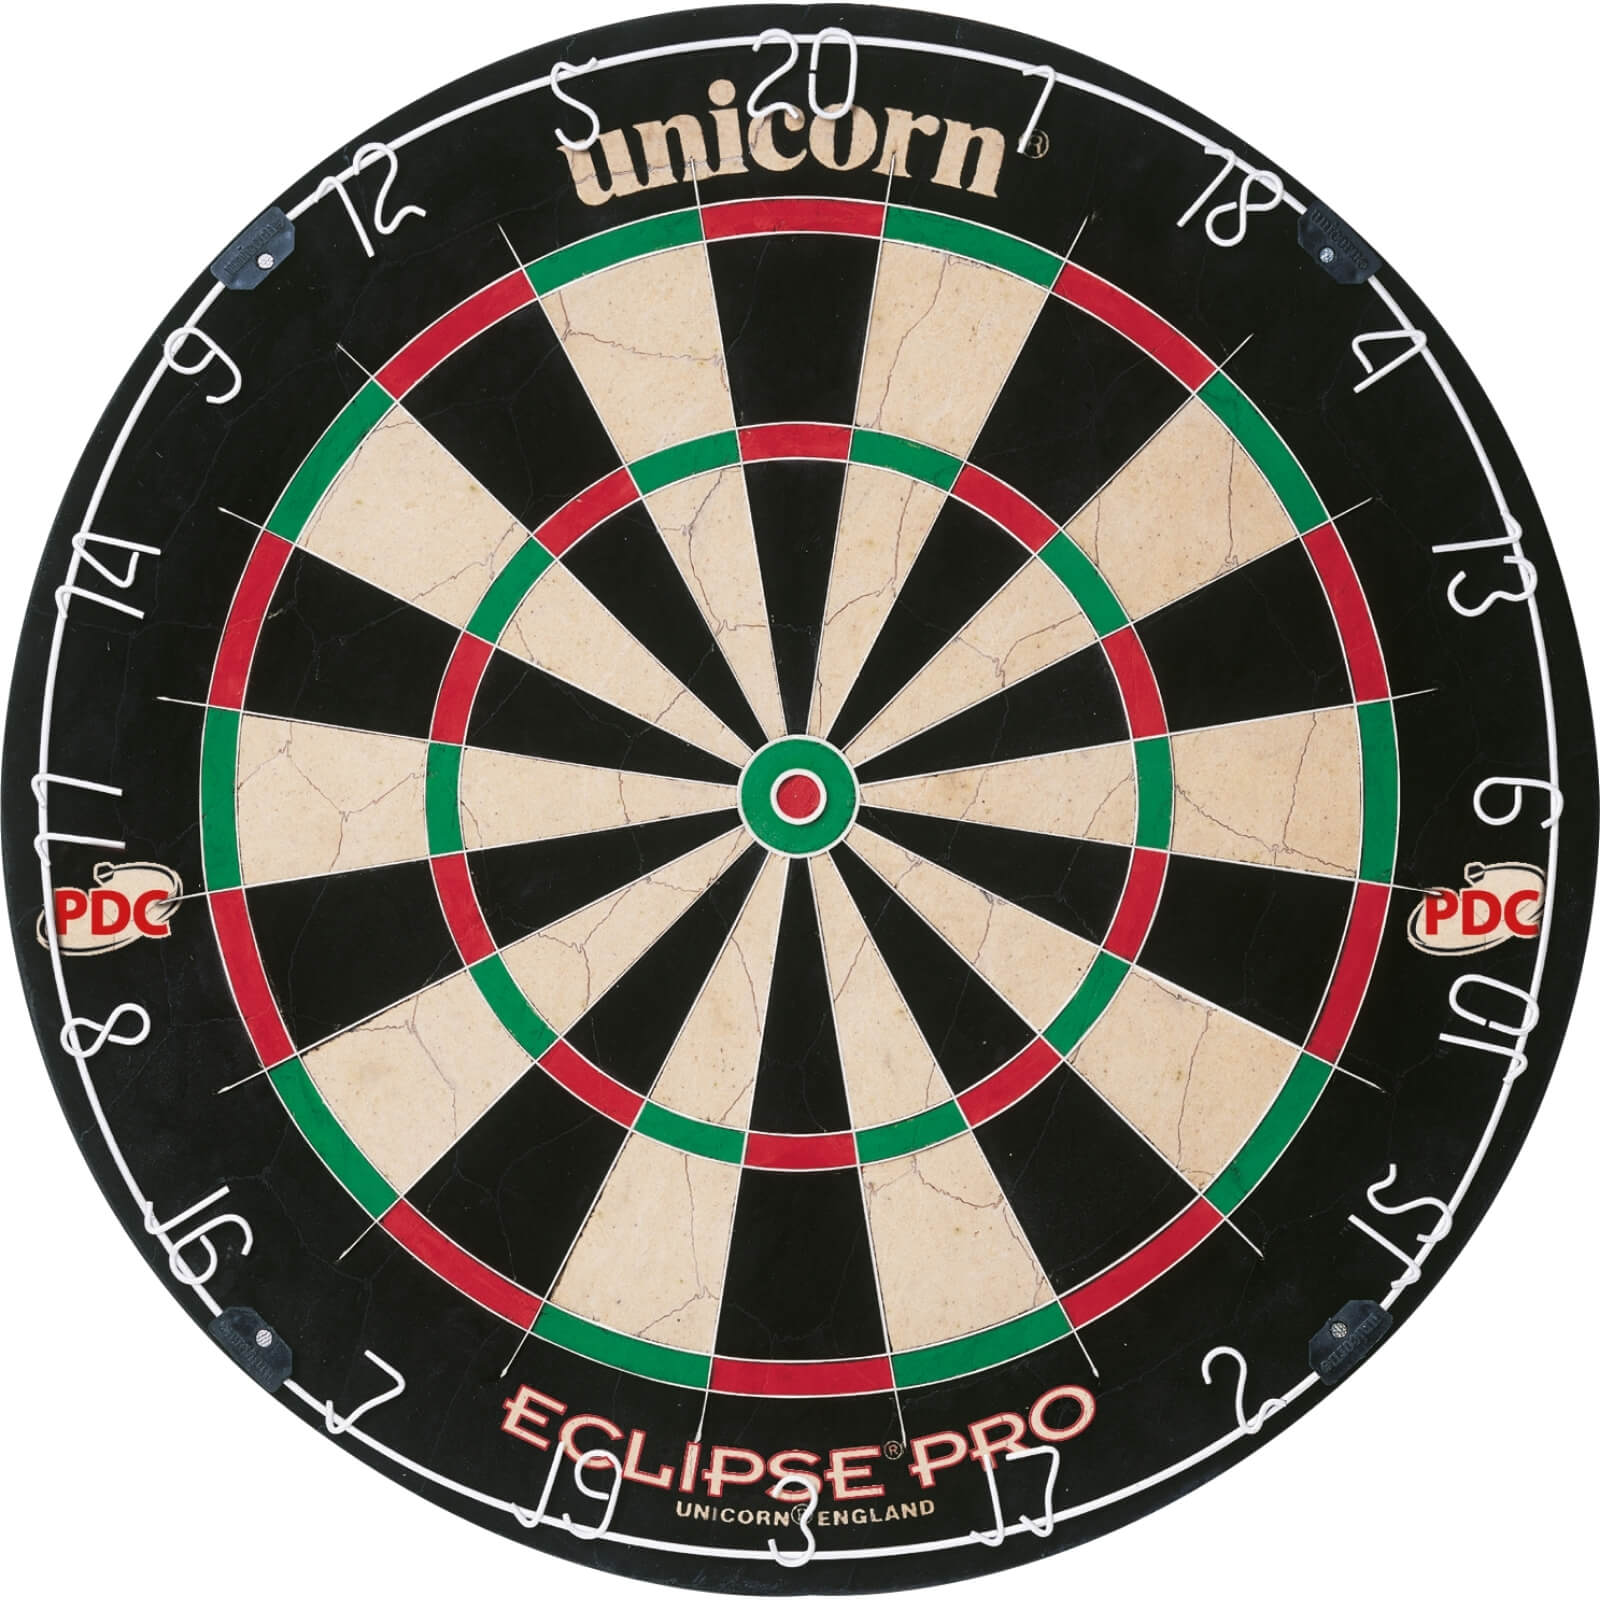 Dartboards - Unicorn - Eclipse Pro Dartboard